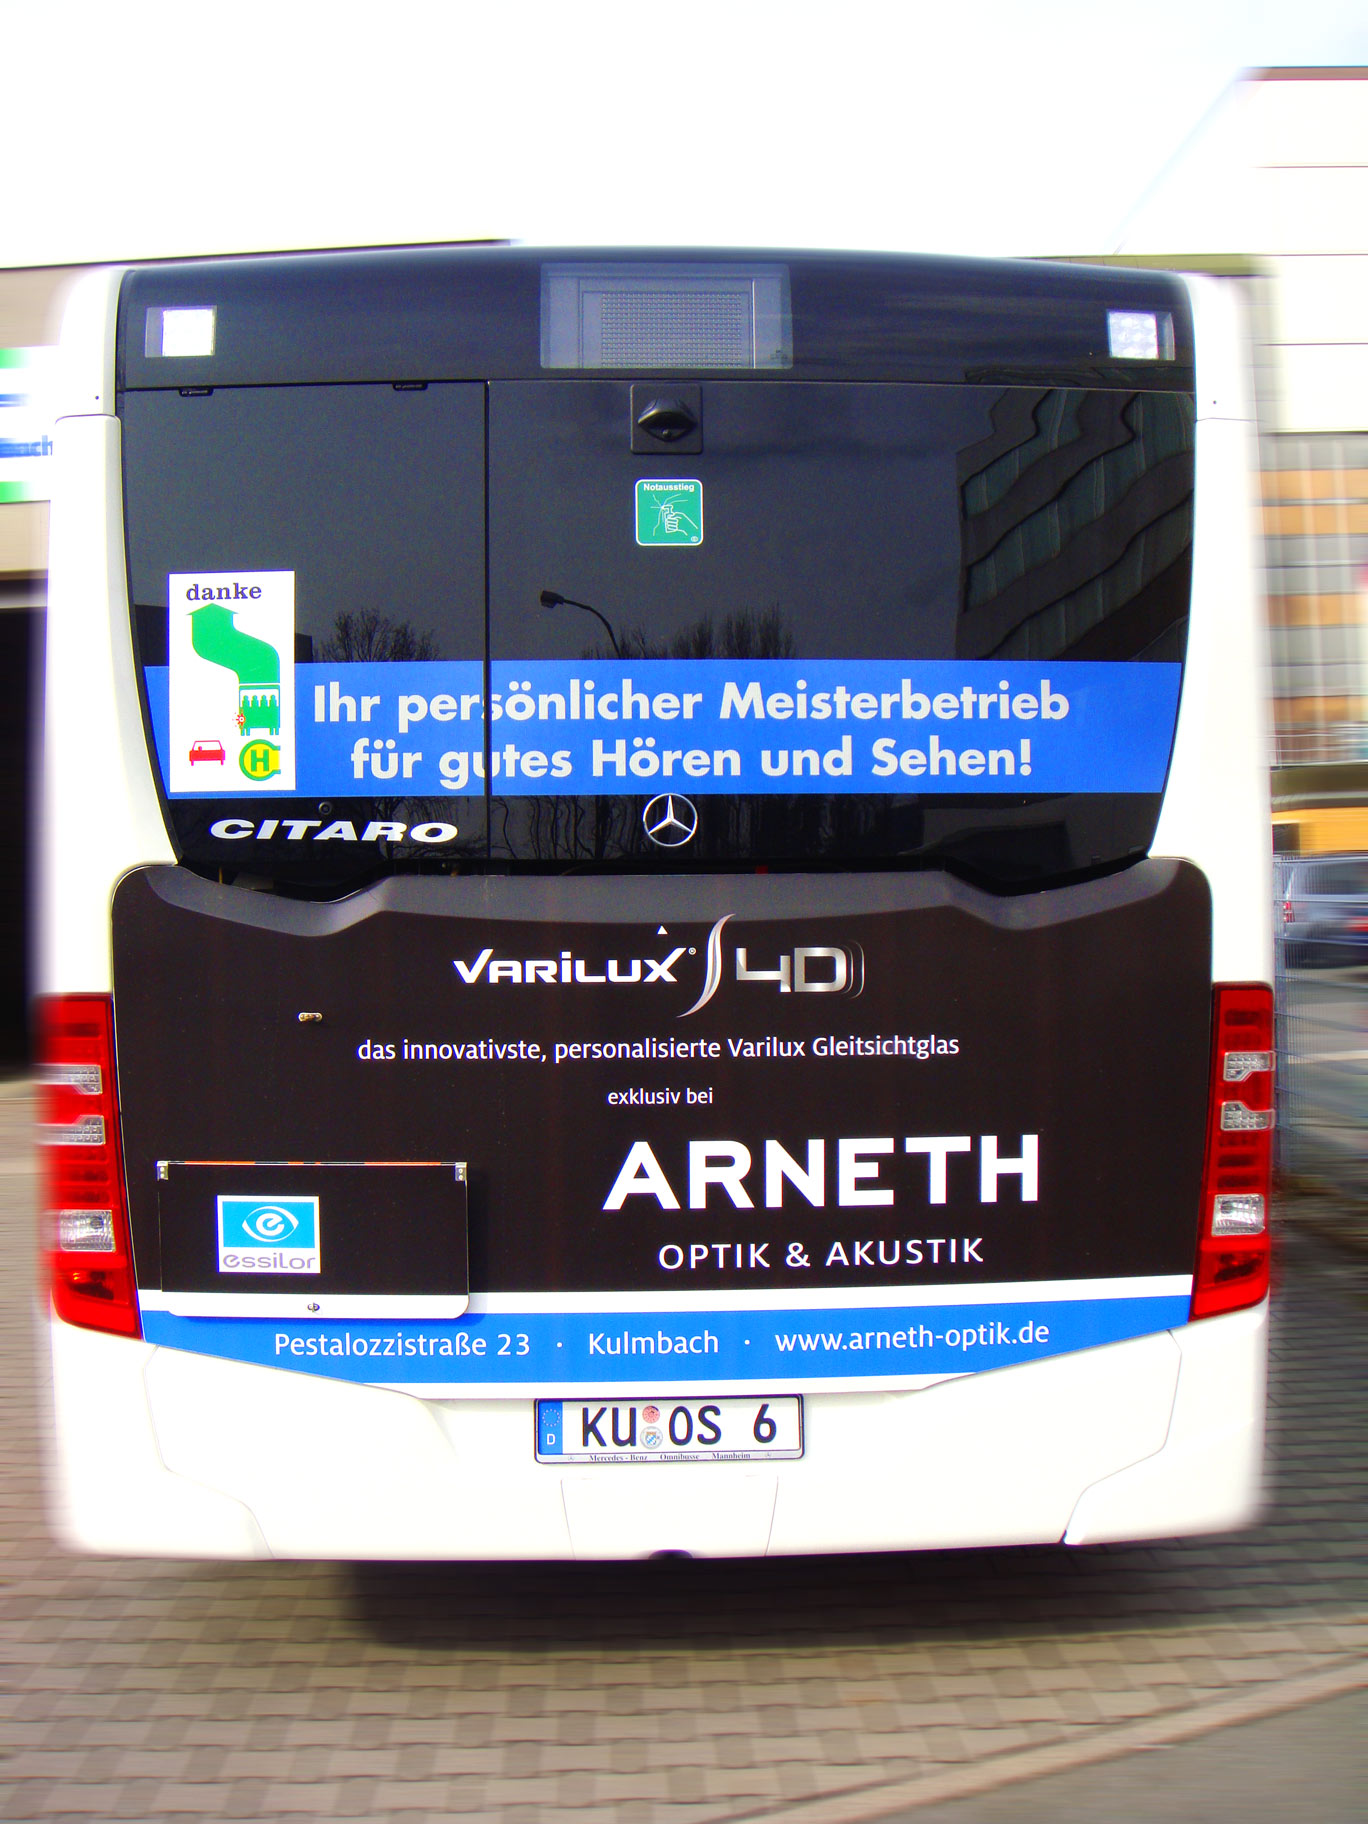 Buswerbung - Arneth Optik - Heck